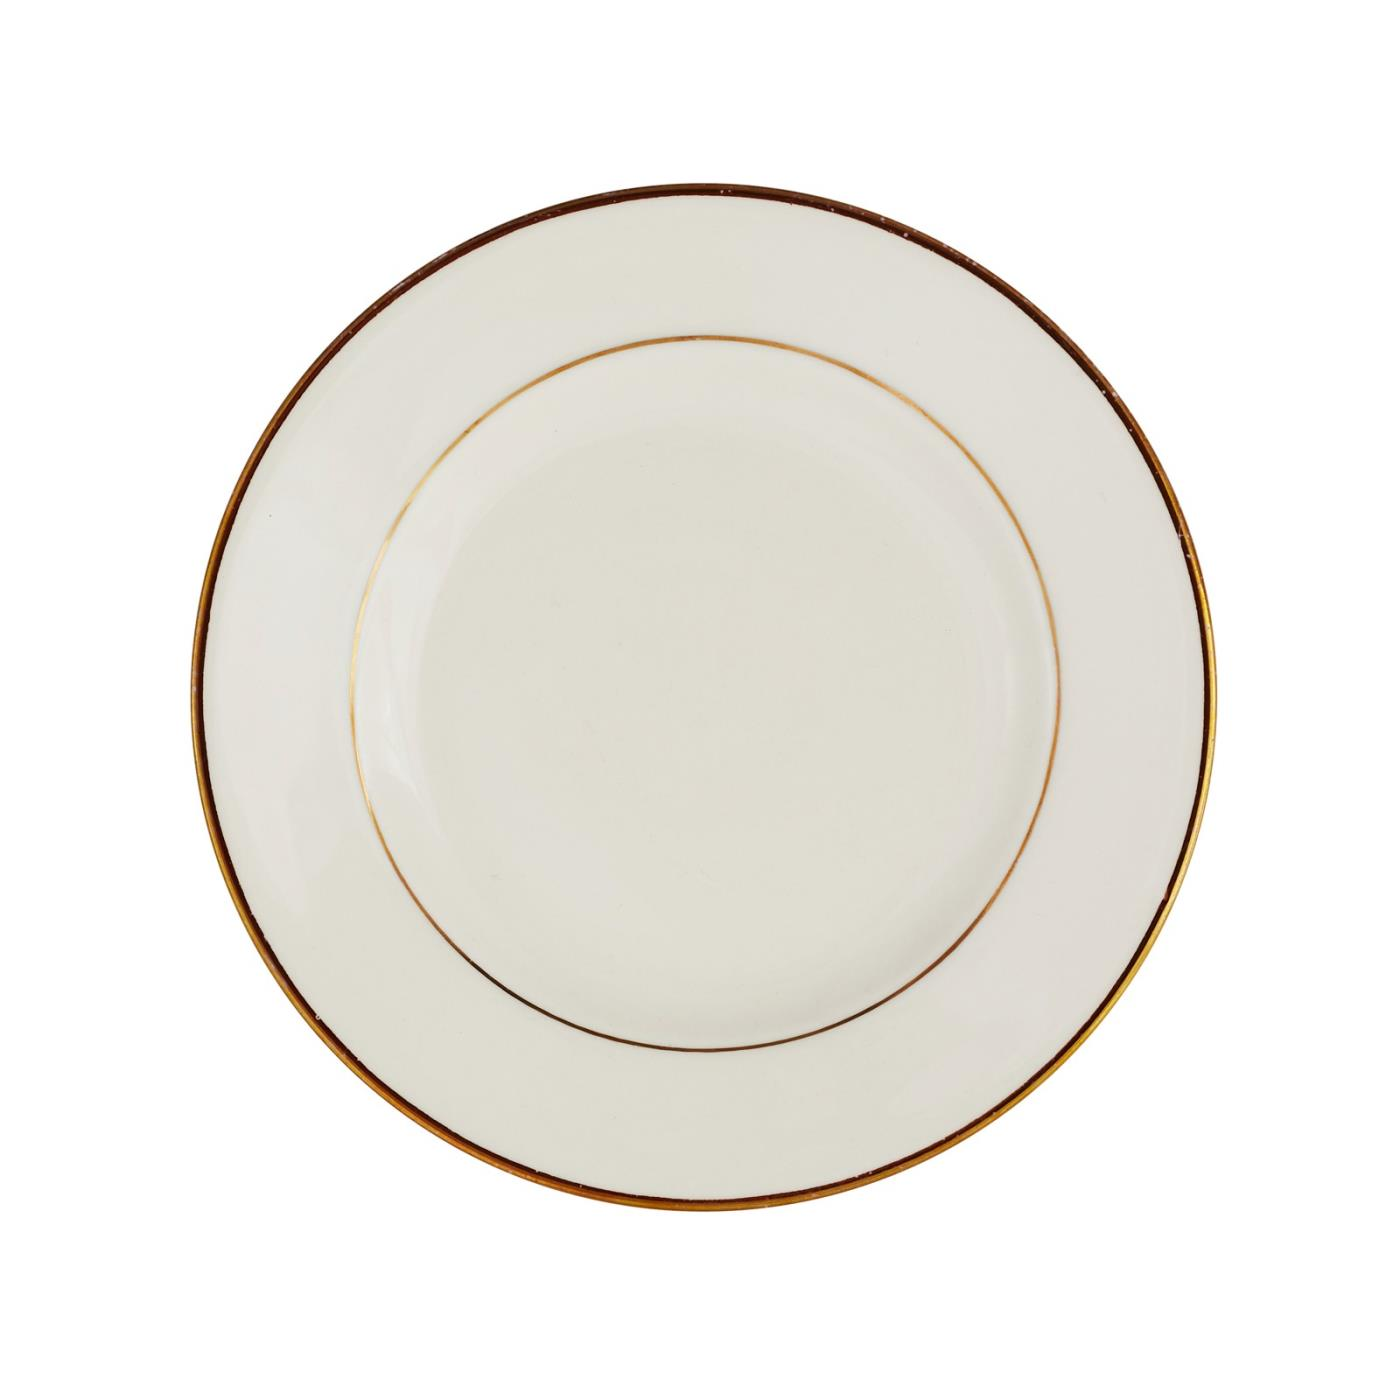 Ecru with Gold Rim Collection -  B&B Plate 5.75""